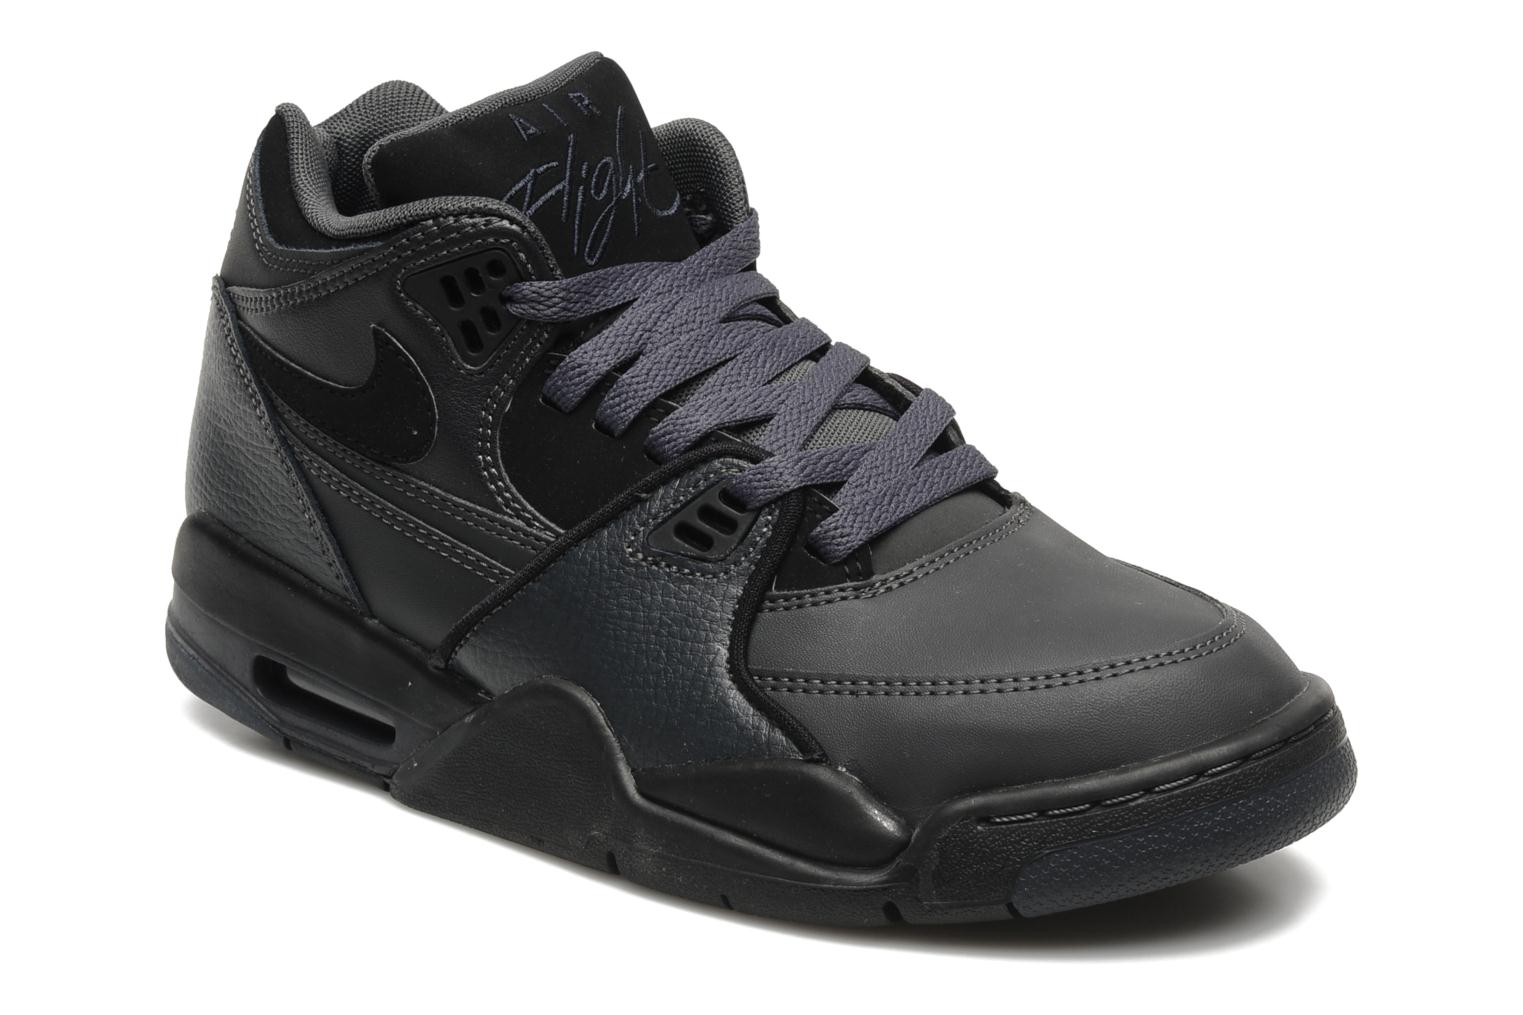 nike air flight 89 noir; nike air flight 89 anthracite green purple